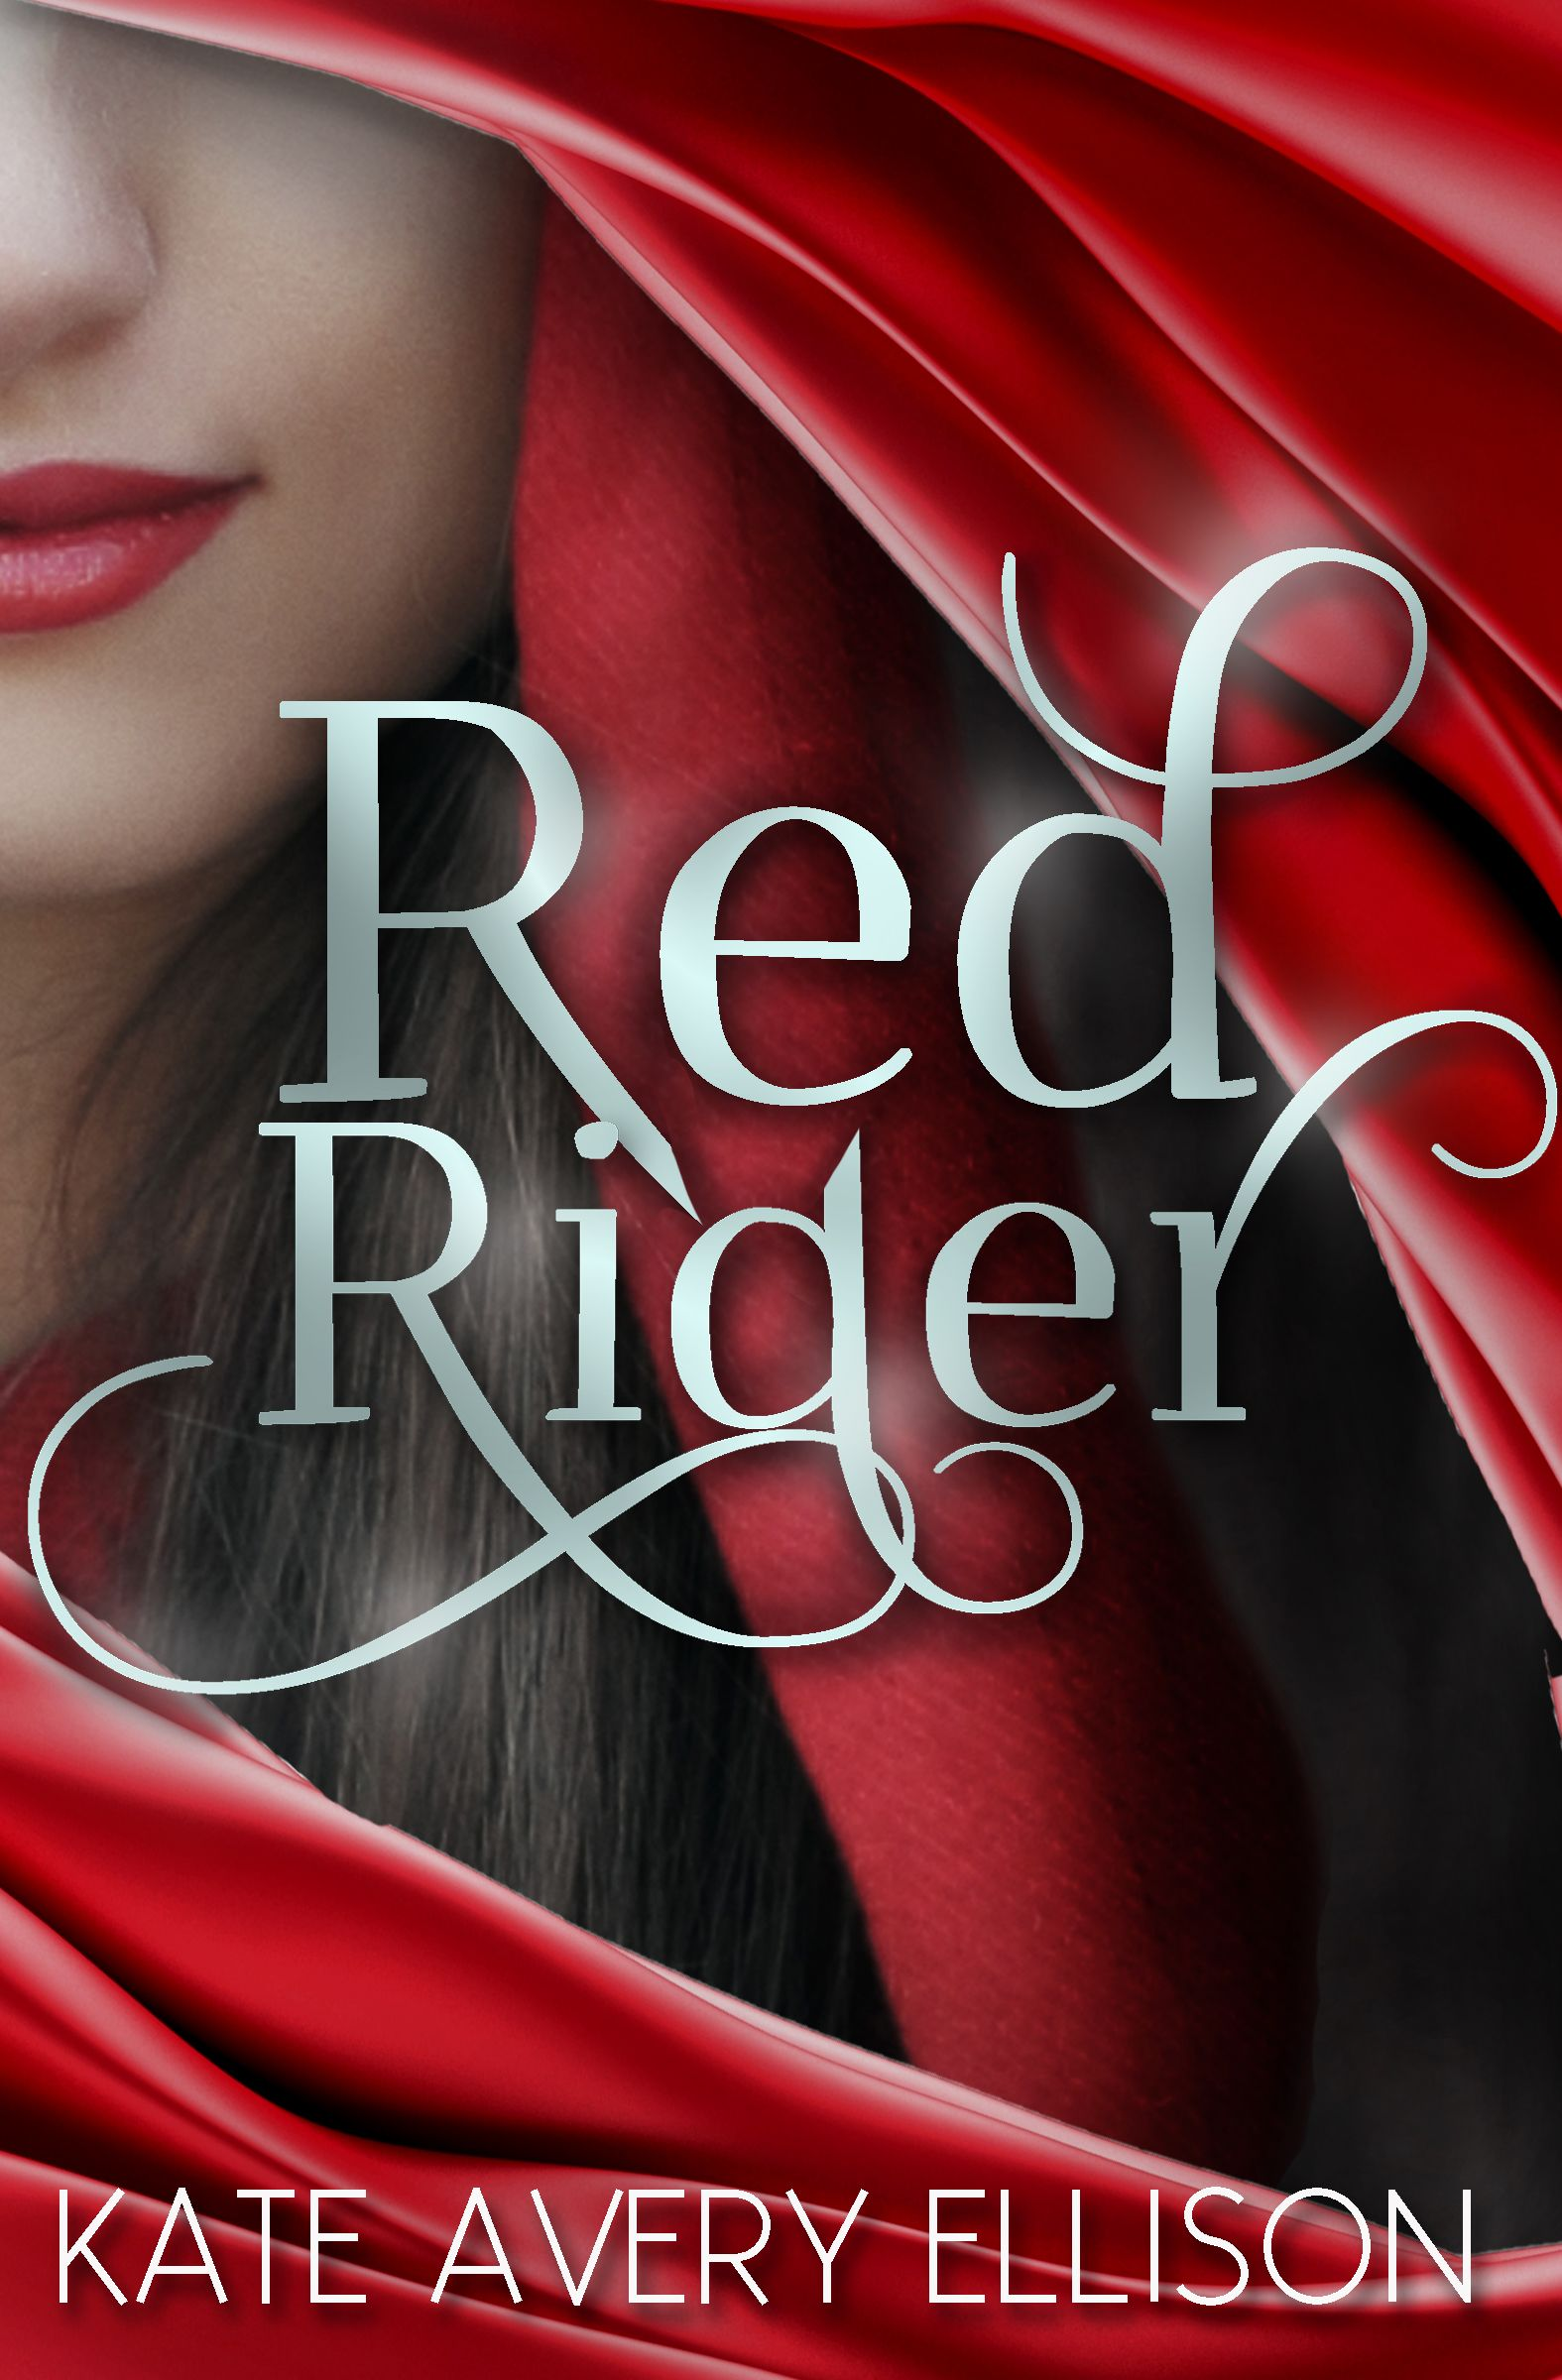 A postapocalyptic fairytale retelling about red riding